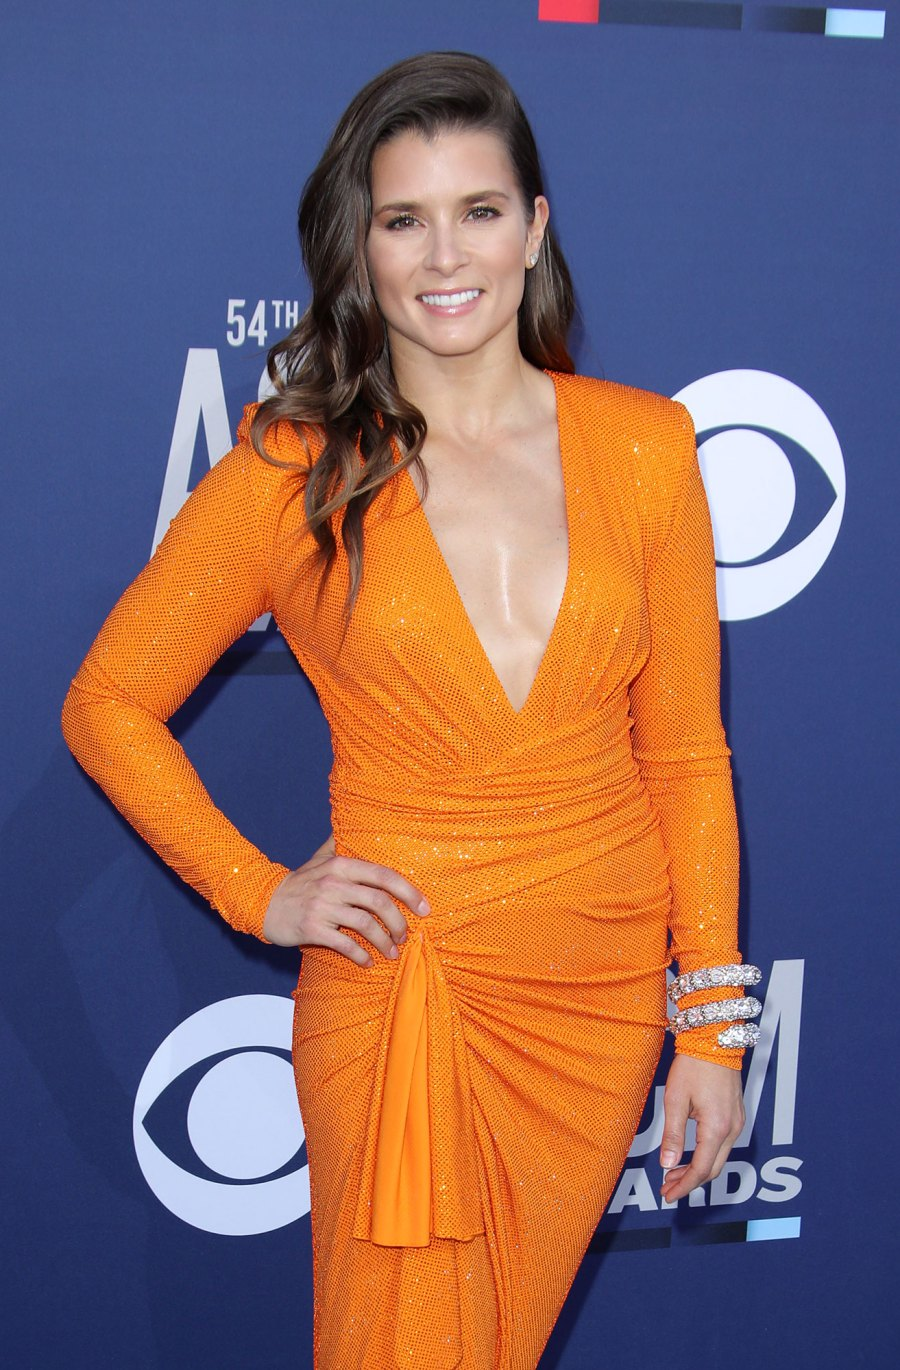 Danica Patrick Boyfriend Carter Comstock 5 Things to Know